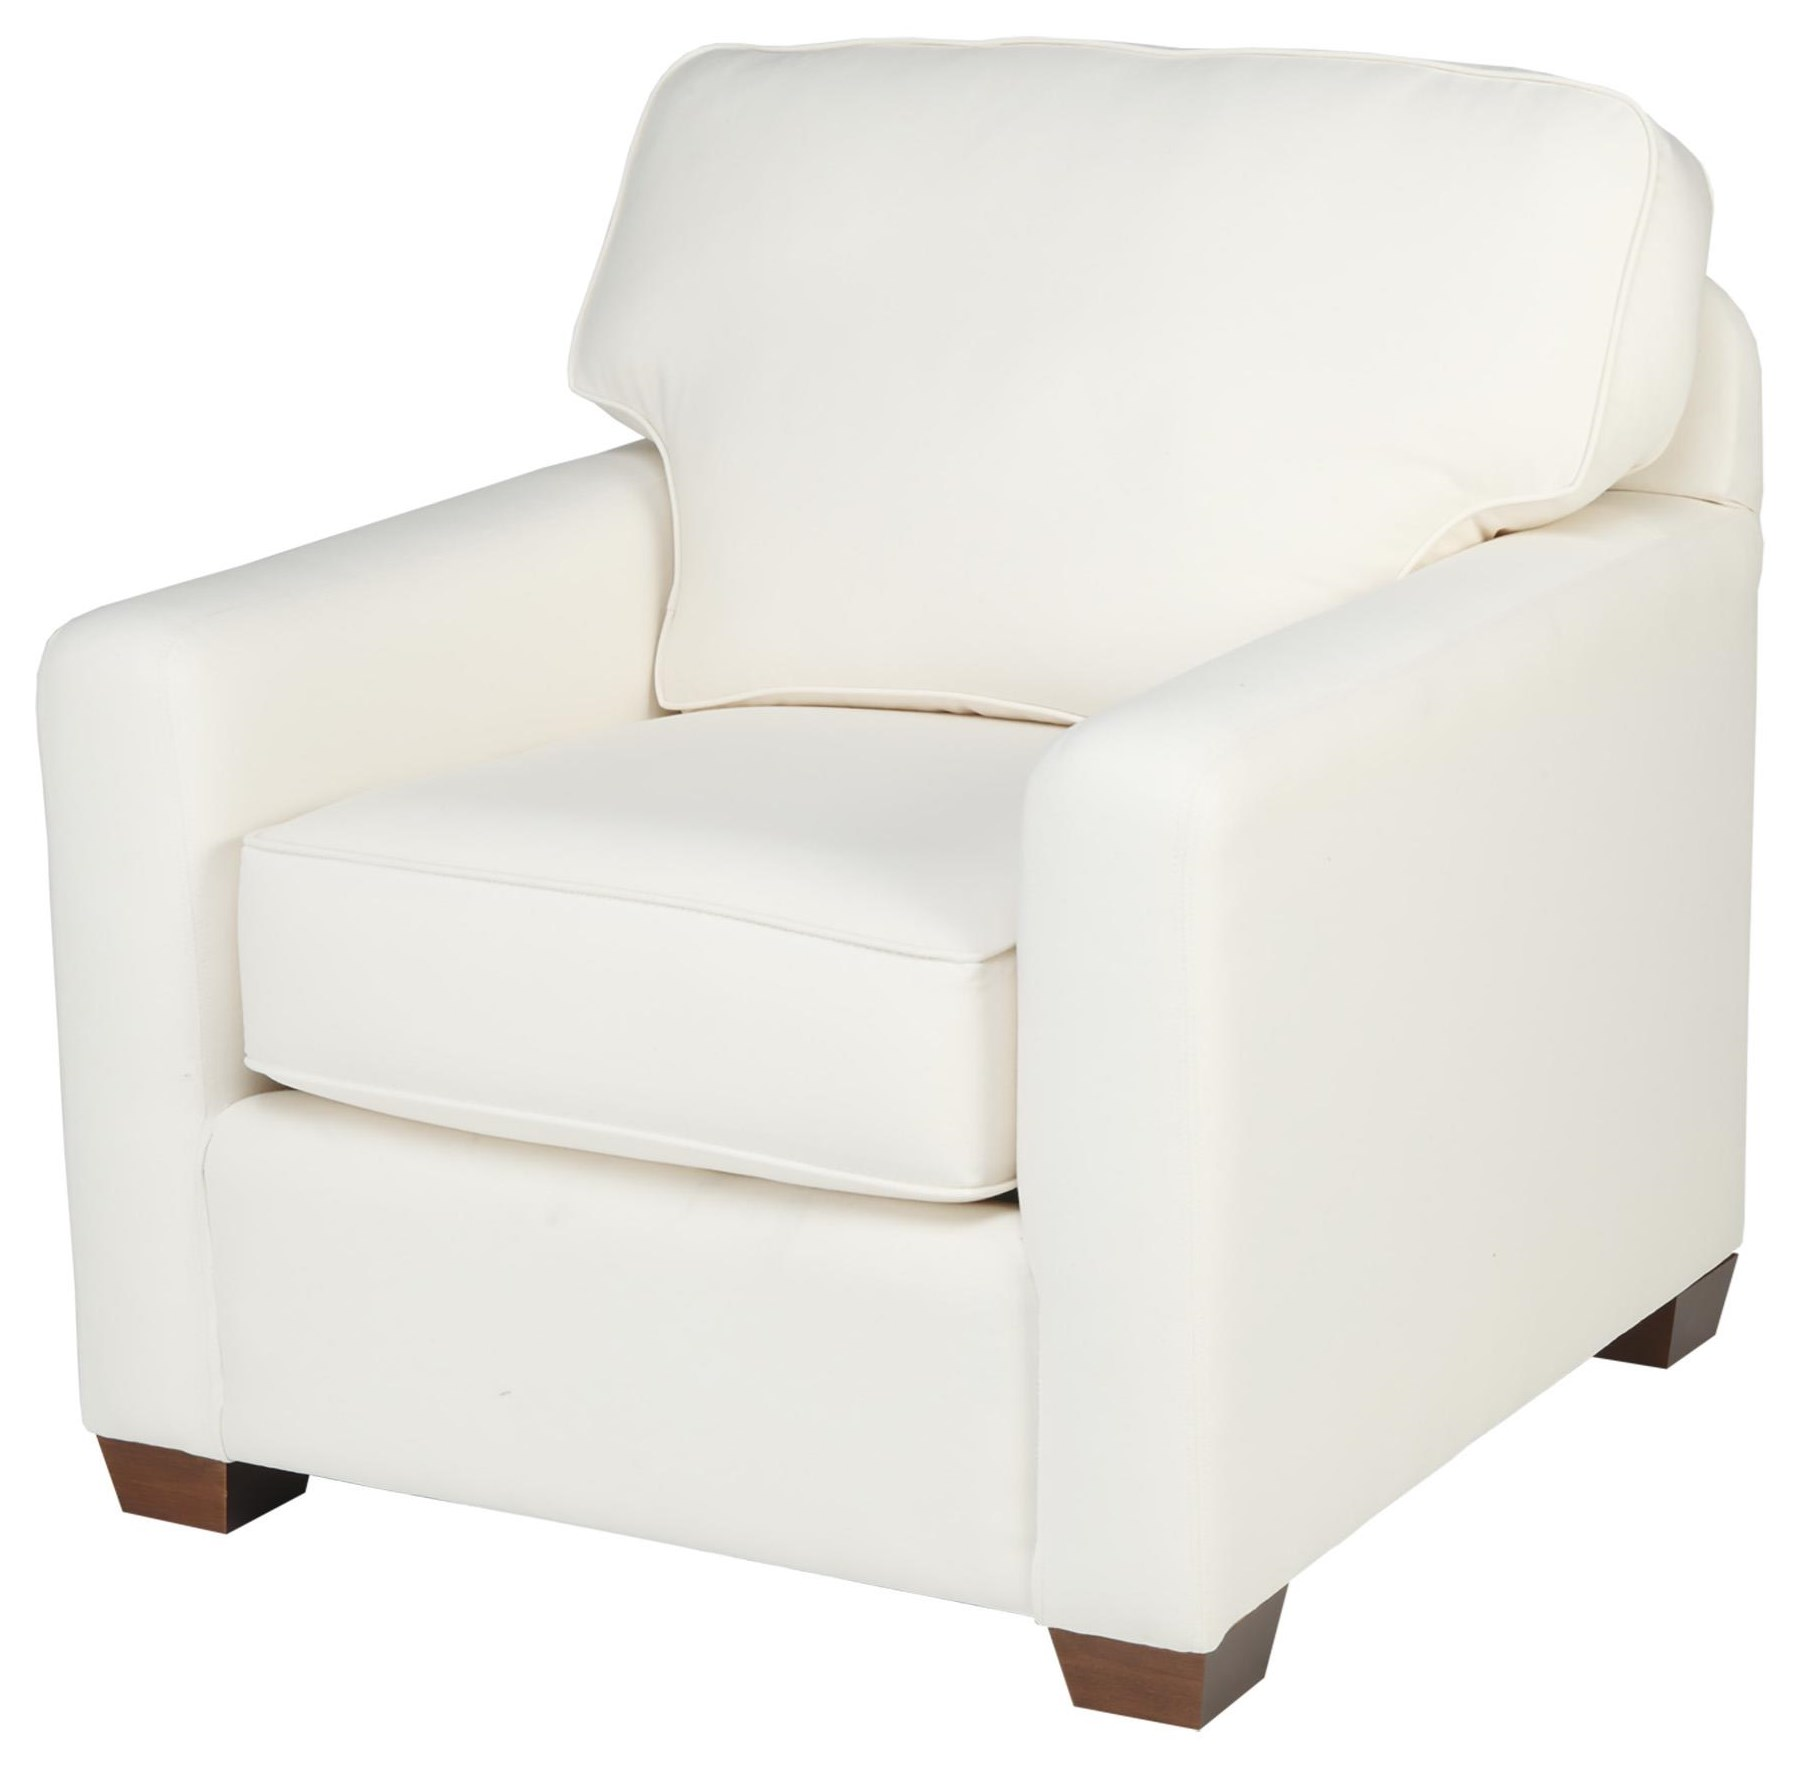 Just Your Style Chair by Justice Furniture & Bedding at Crowley Furniture & Mattress